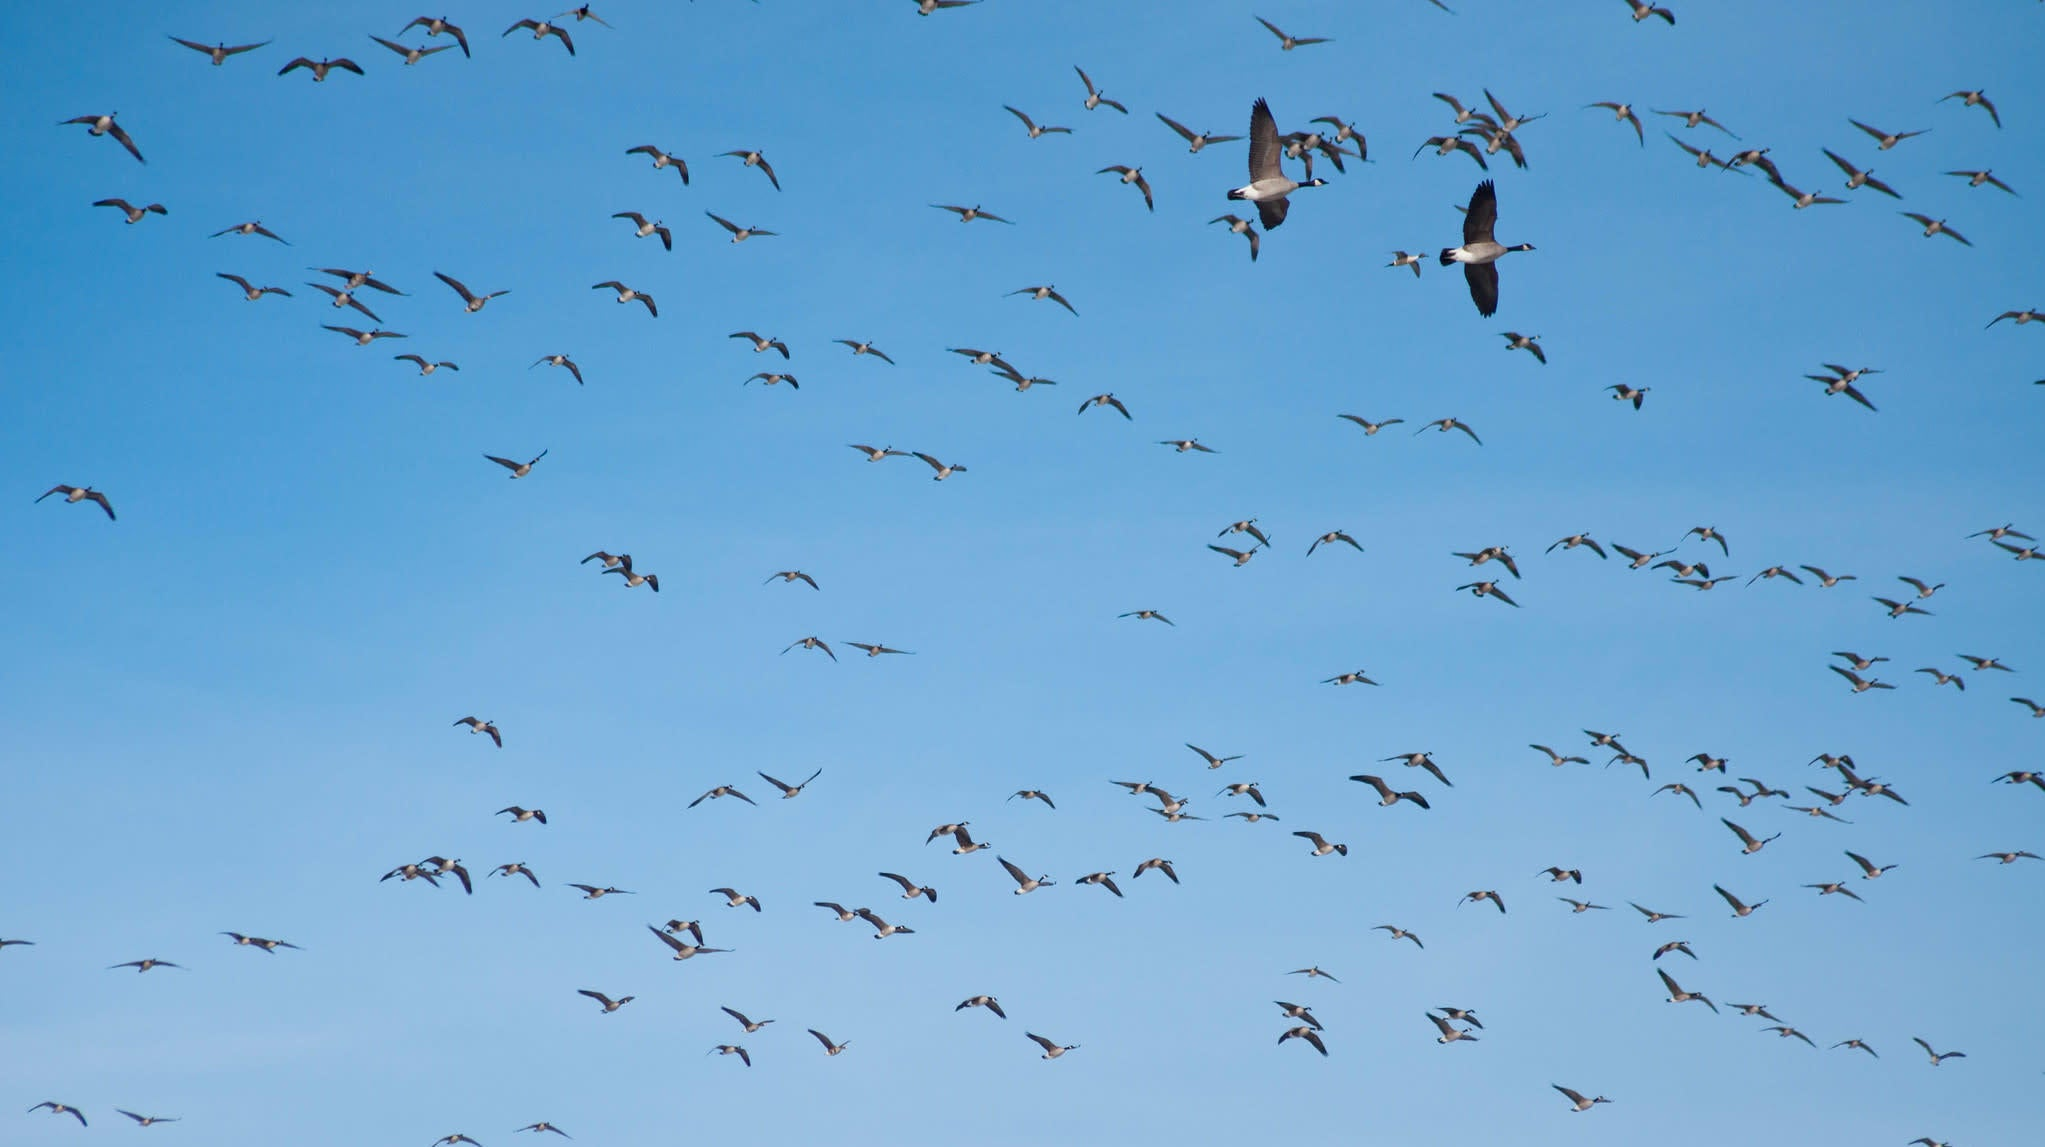 NORAD Will Neither Confirm Nor Deny A Flock Of Birds Caused White House Lockdown